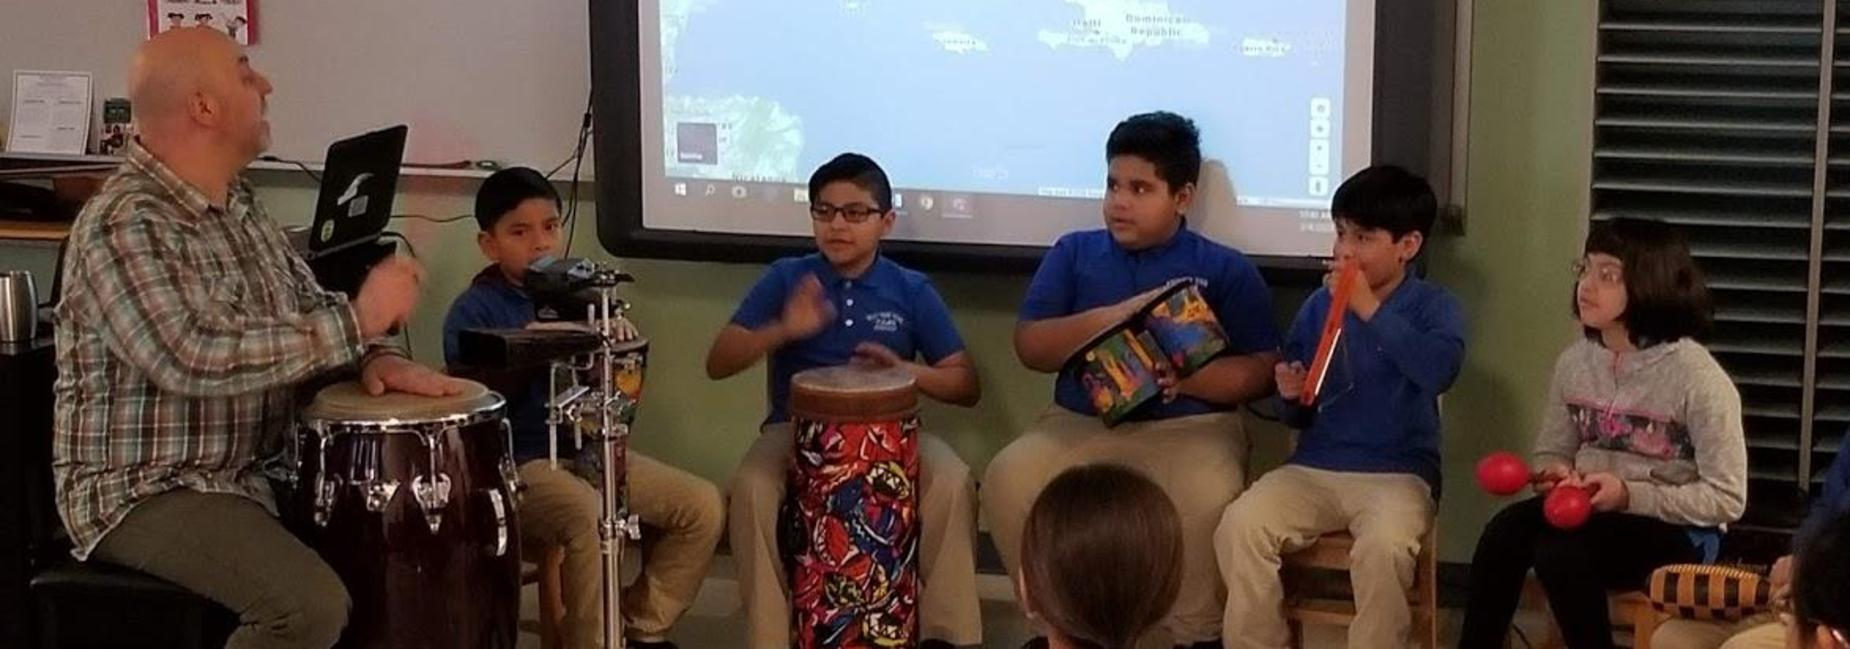 students playing music instruments